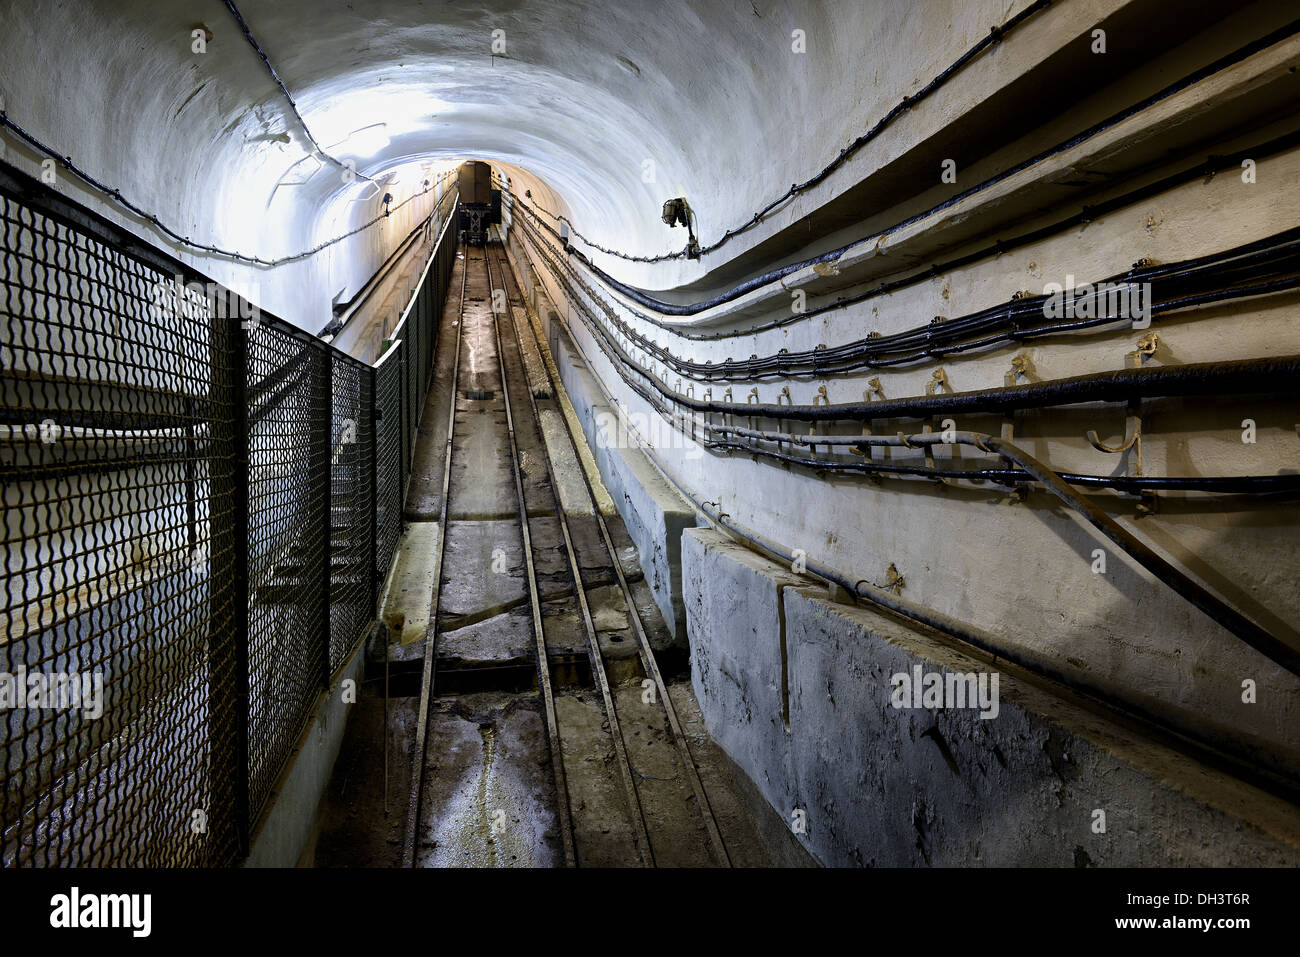 Inclined plane railway, Four à Chaux fortress, Maginot line. - Stock Image